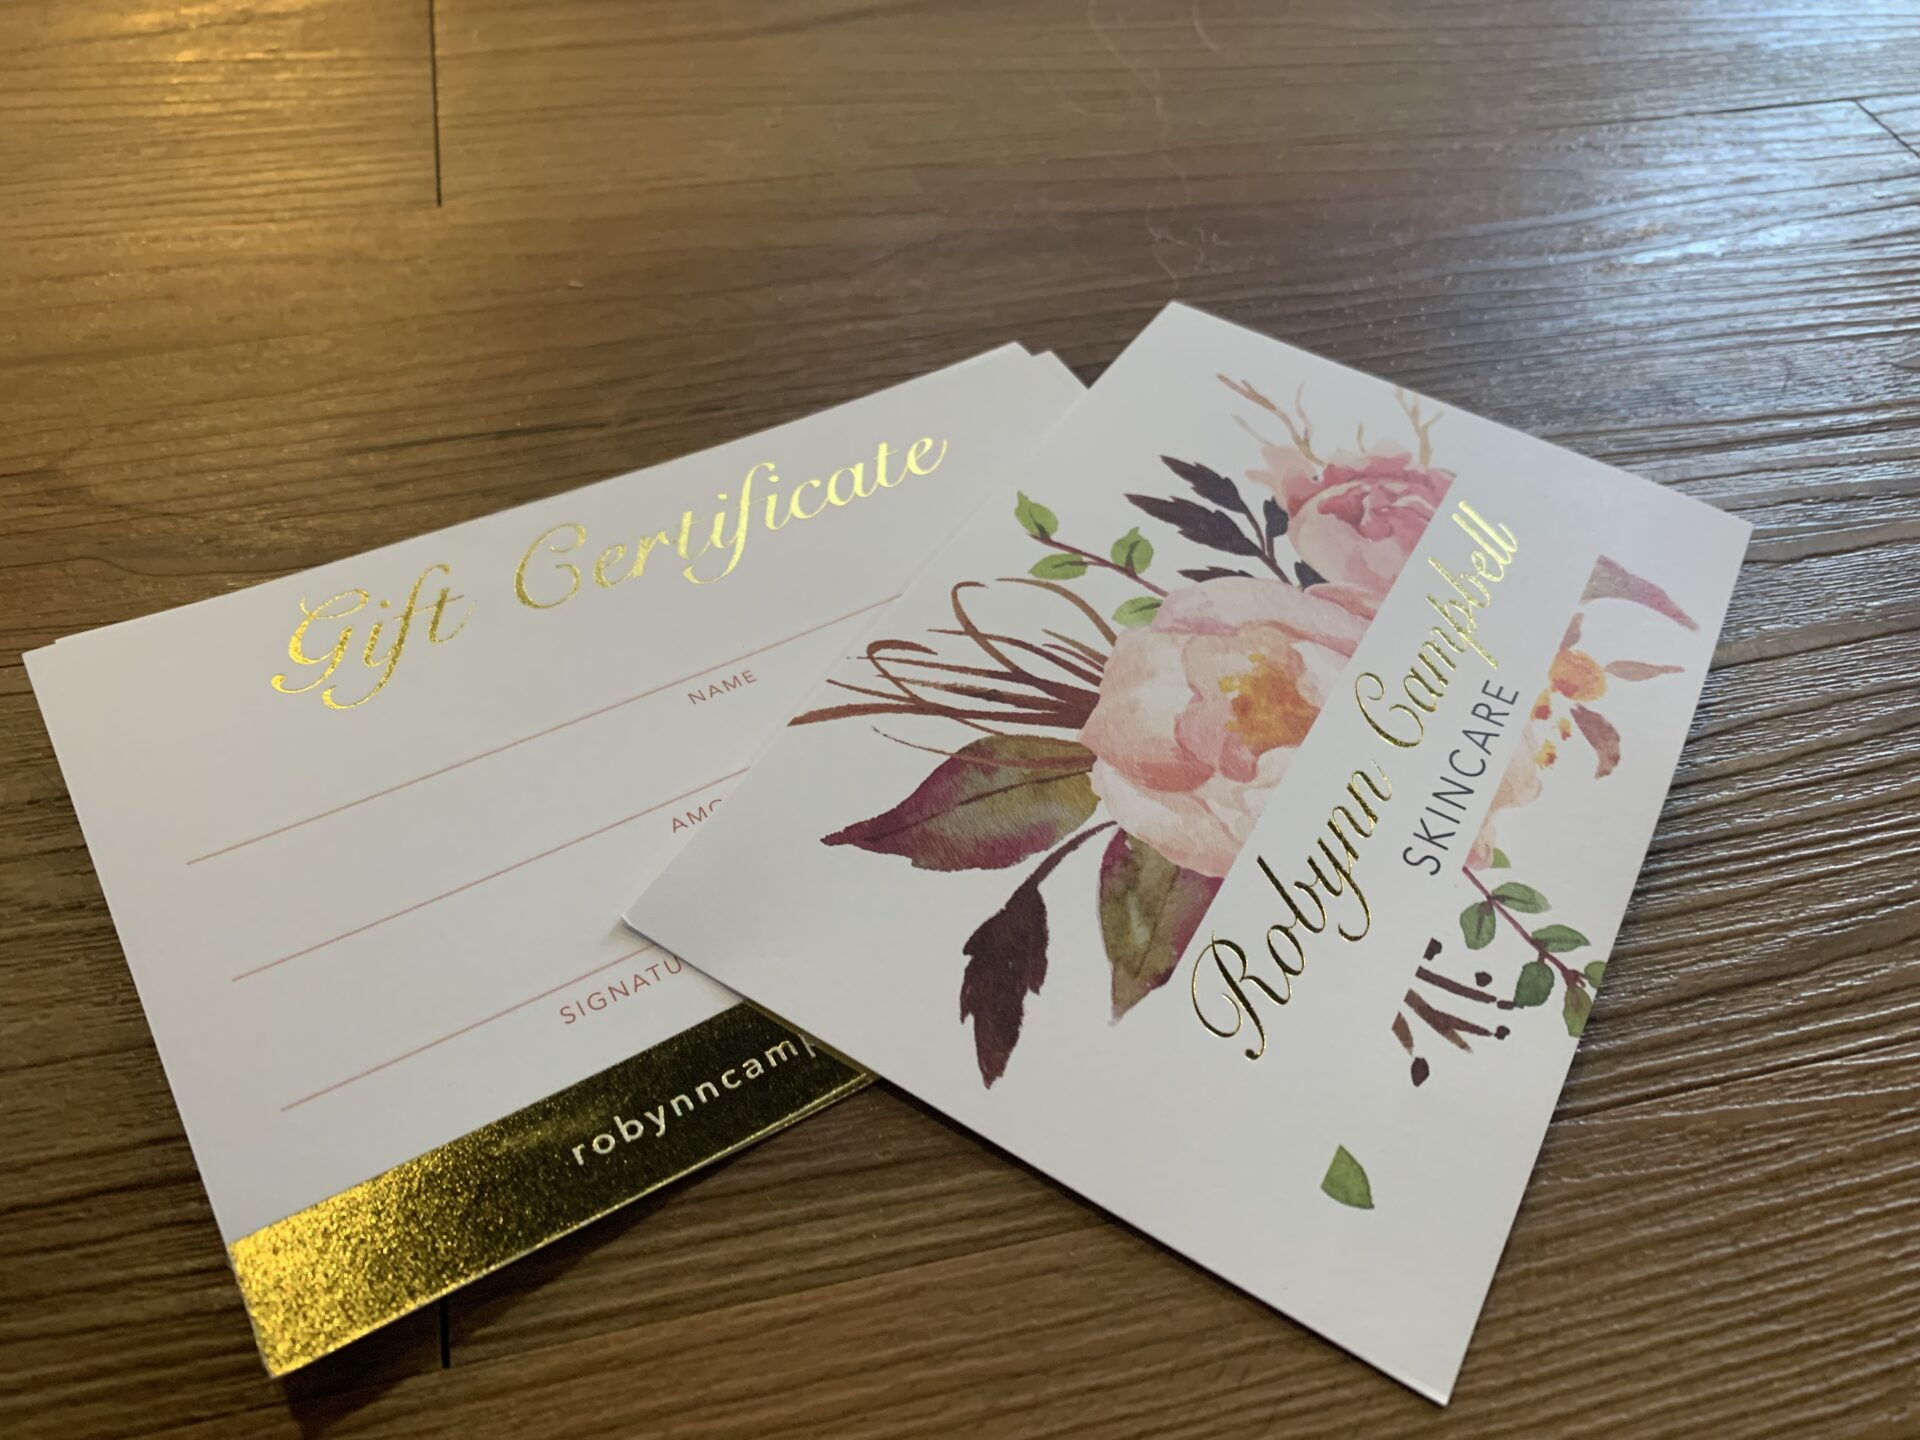 Robynn Campbell Skincare Gift Certificate